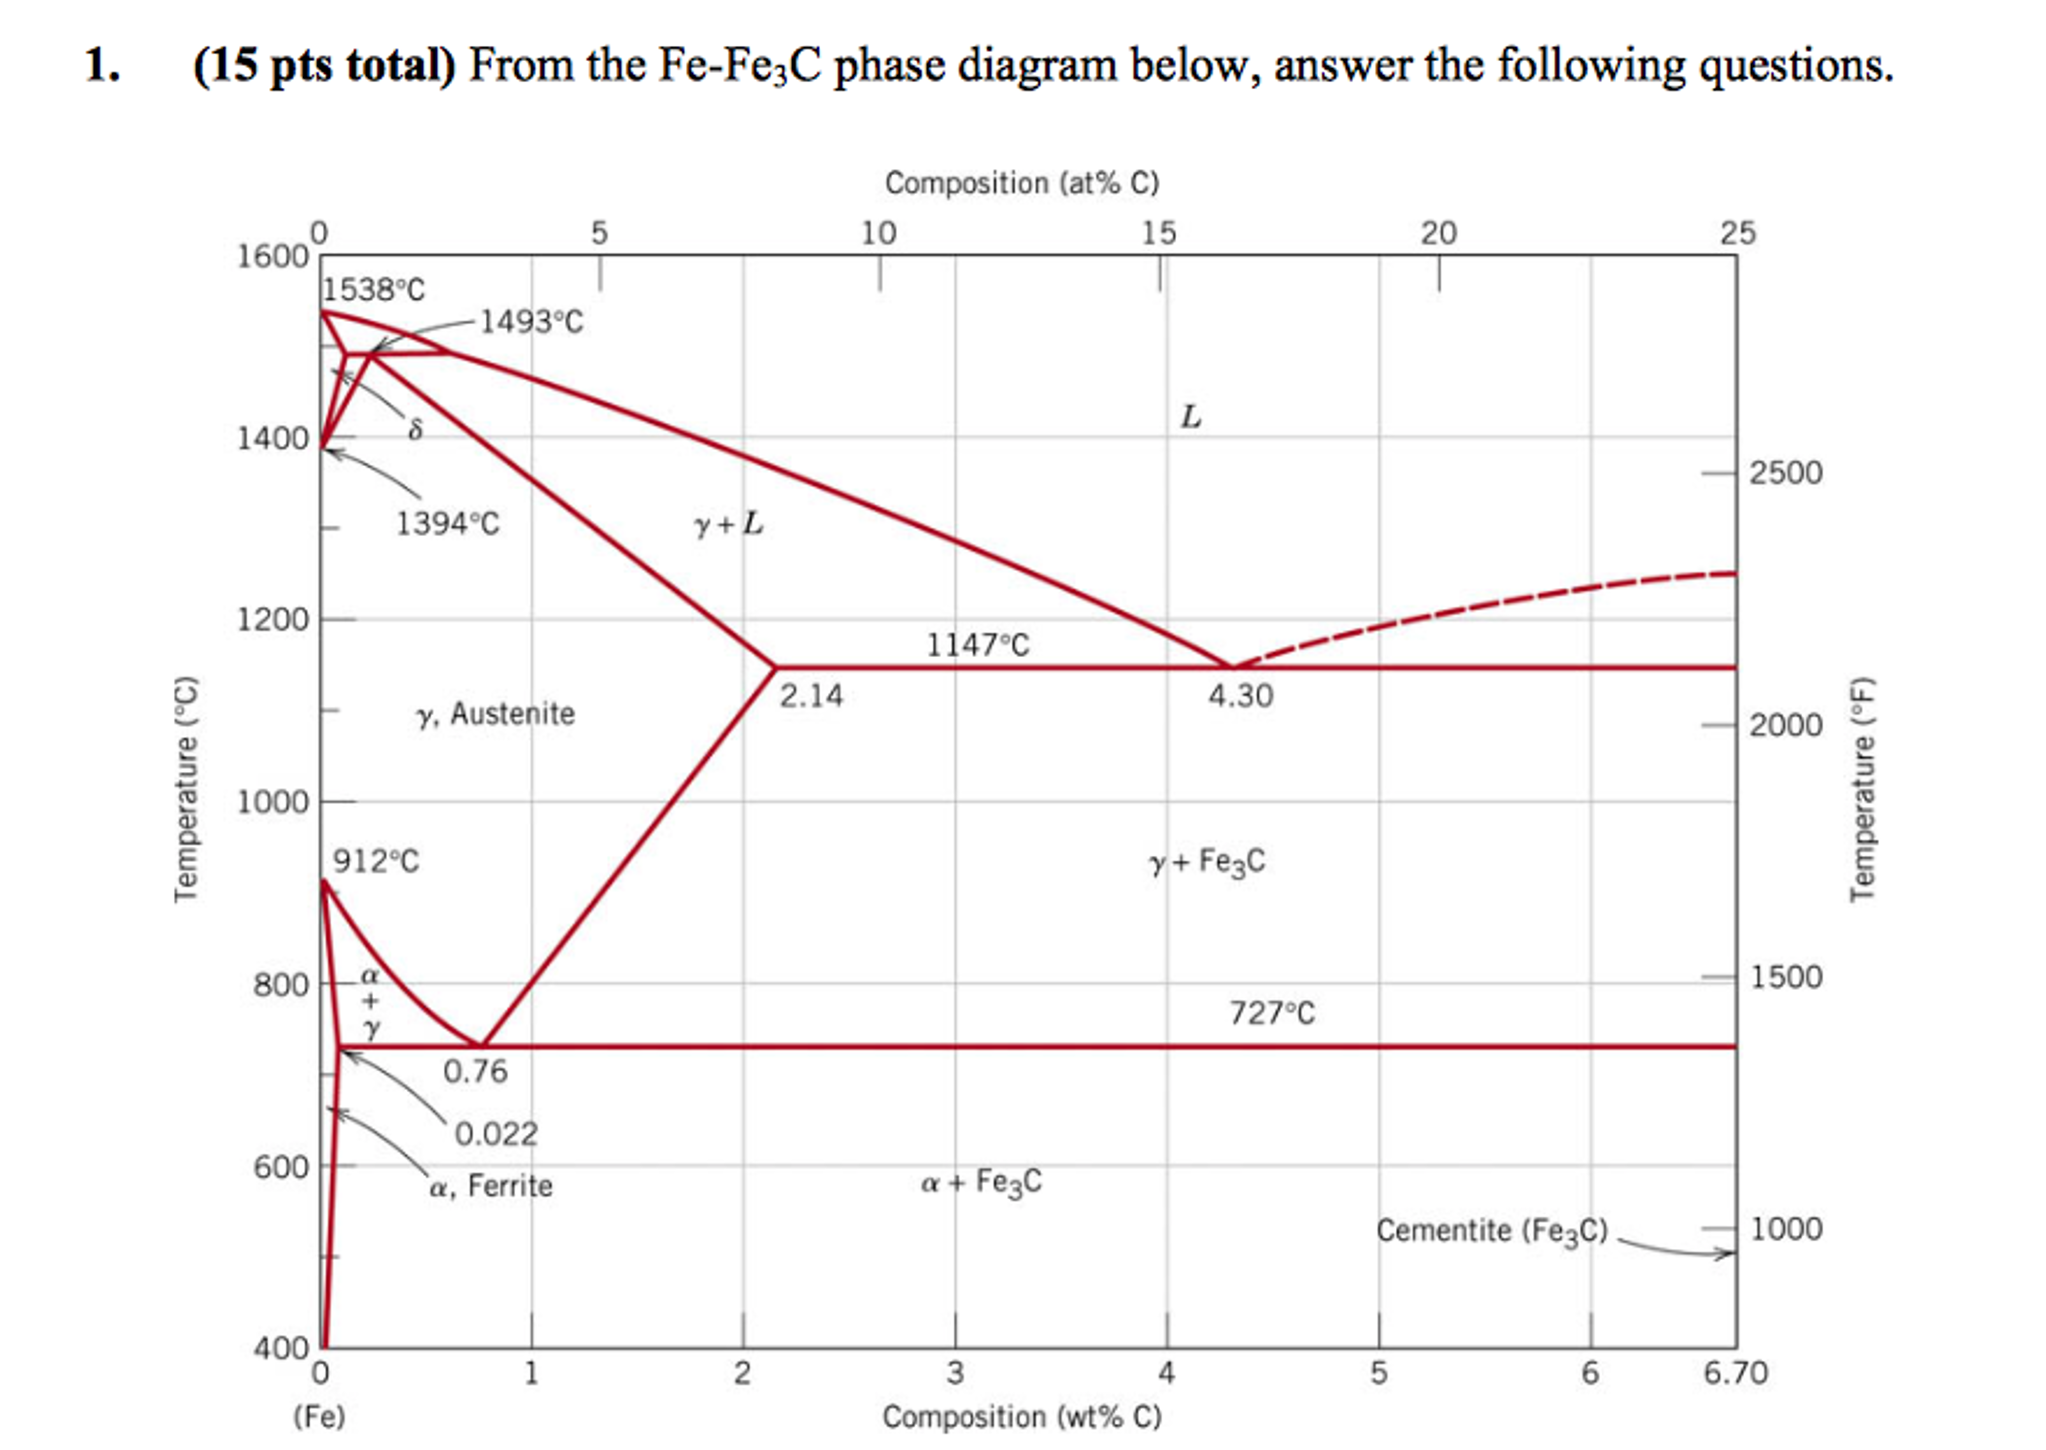 1. (15 Pts Total From The Fe-Fe3C Phase Diagram Be... | Chegg.com